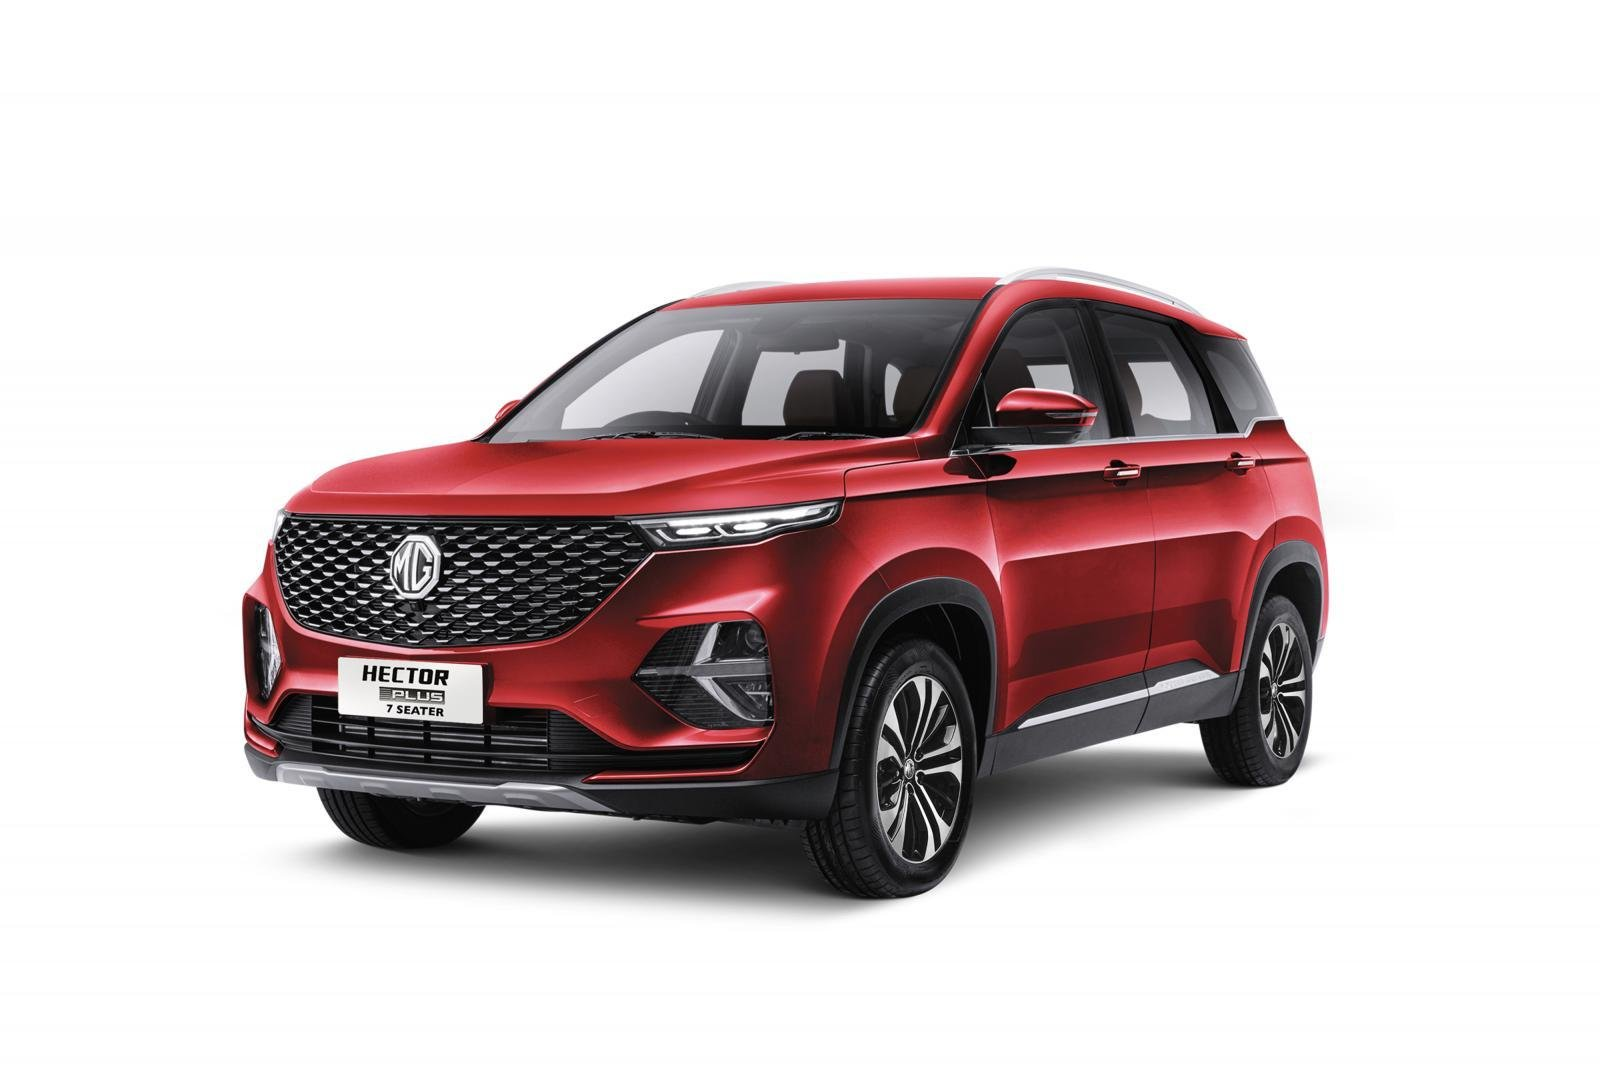 best ground clearance cars below 15 lakhs MG Hector